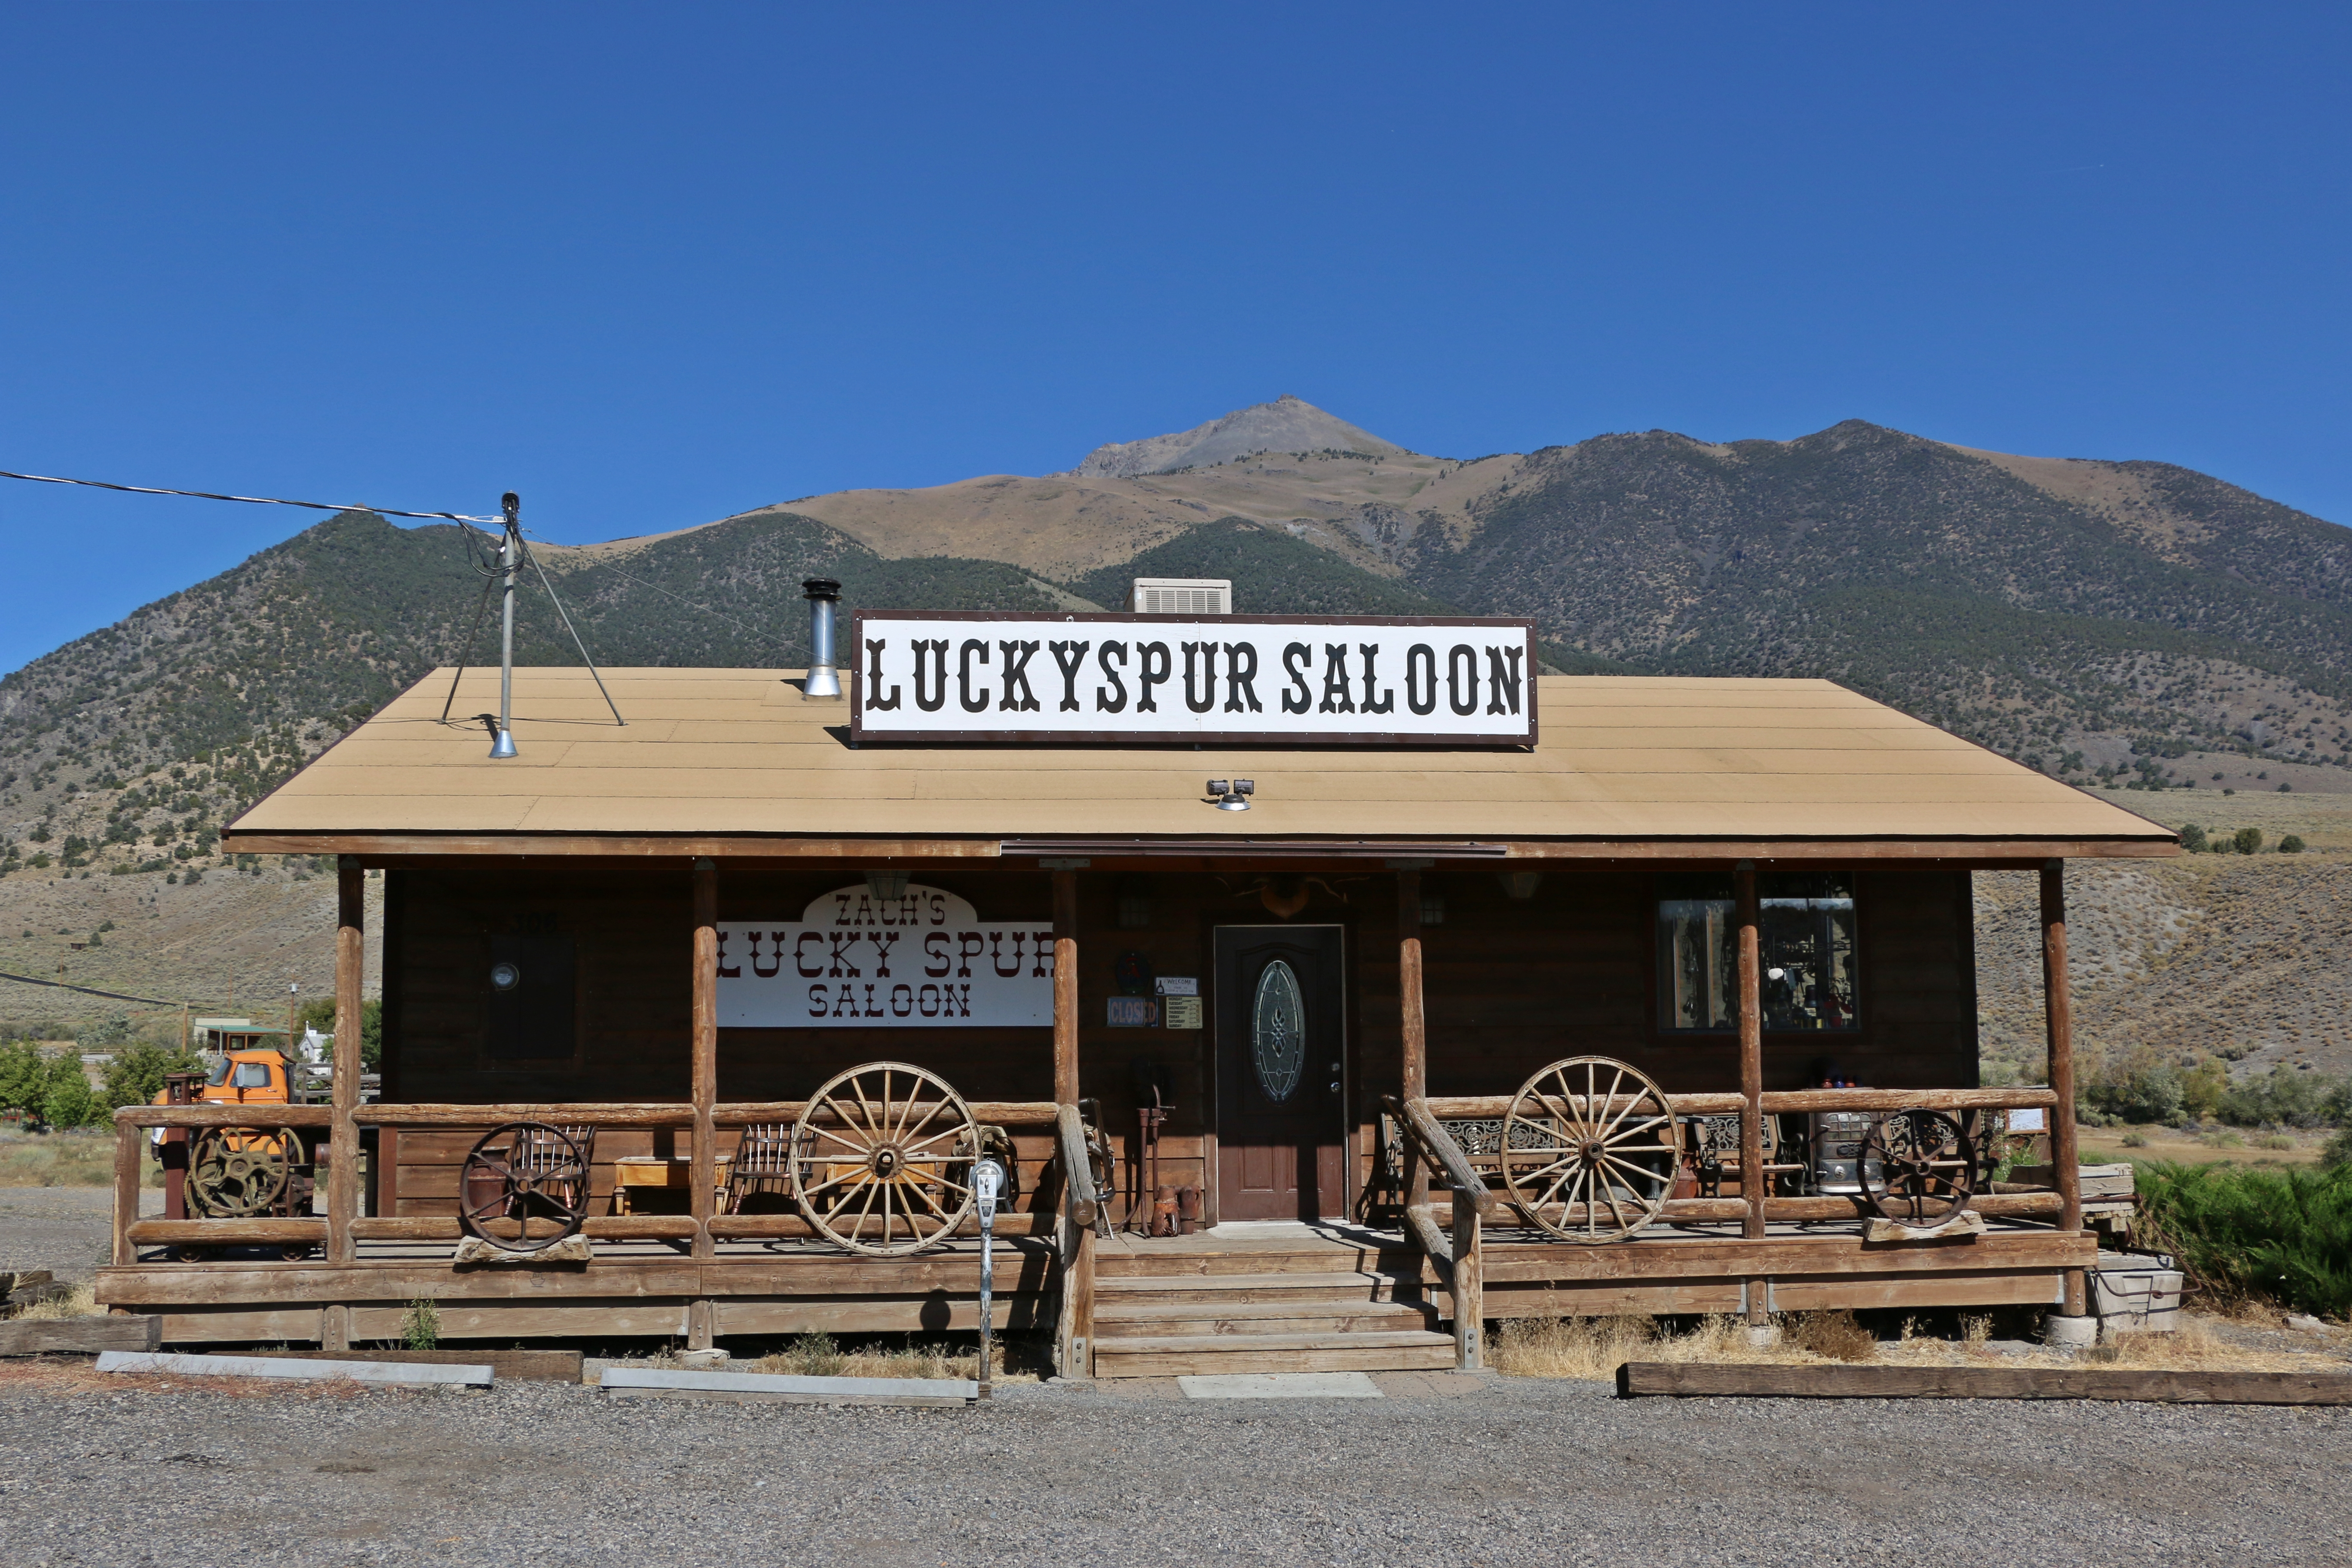 BEST BAR IN THE MIDDLE OF NOWHERE